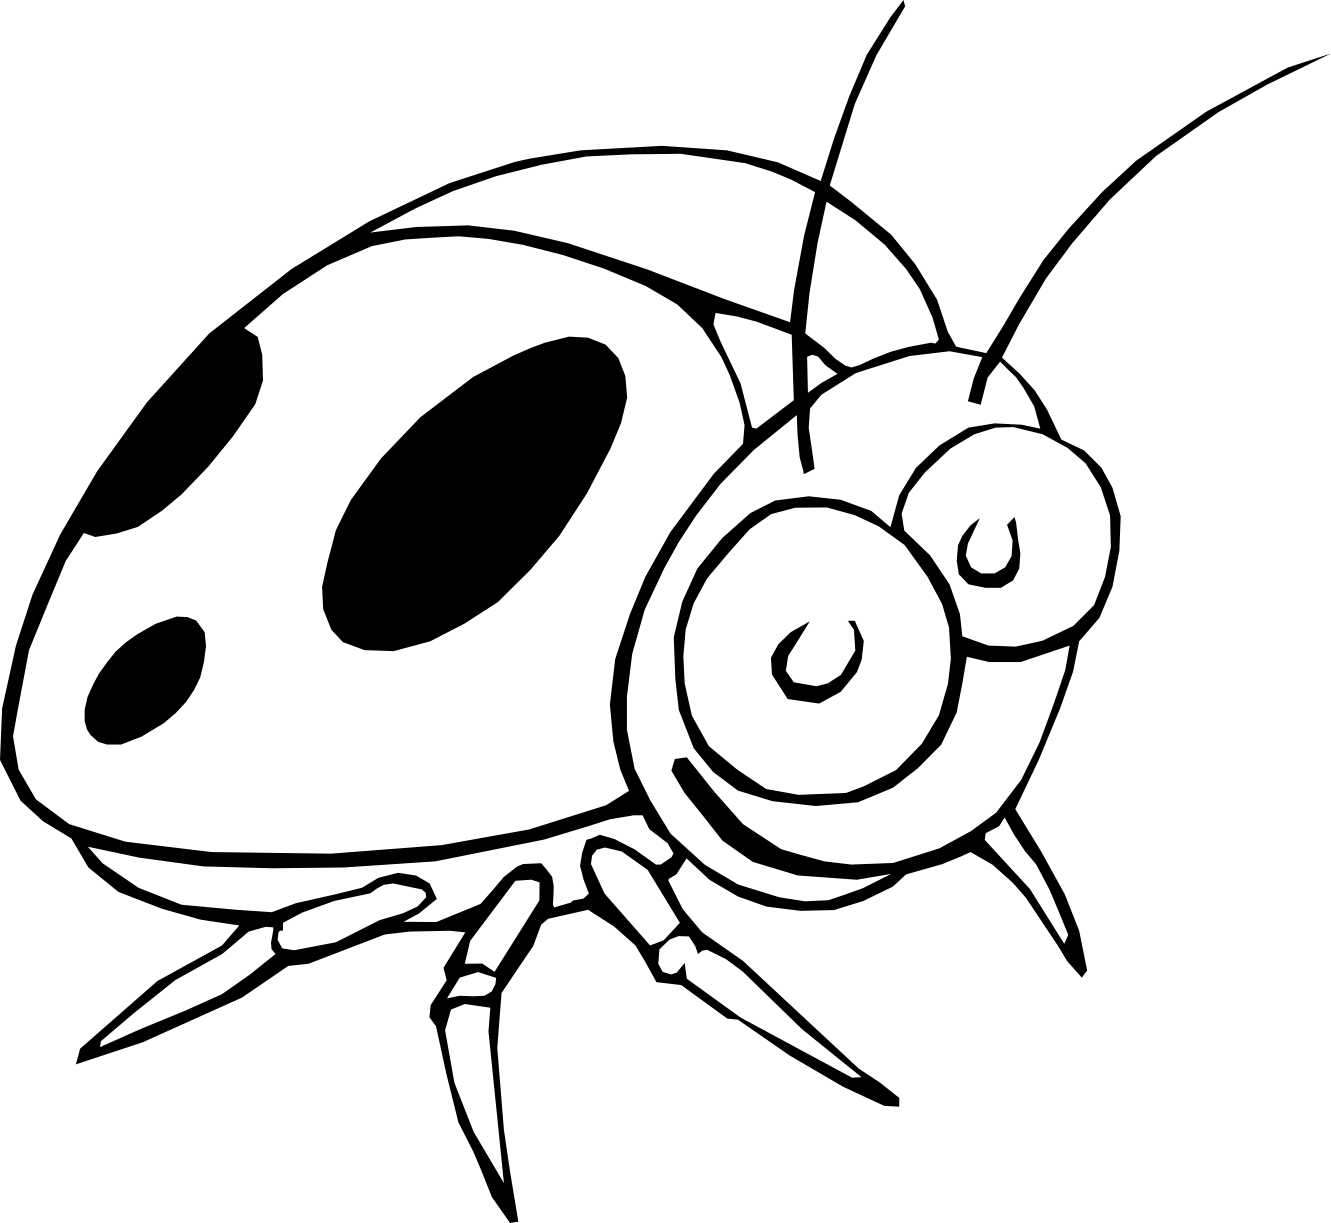 Drawing insect simple. Ladybug at getdrawings com